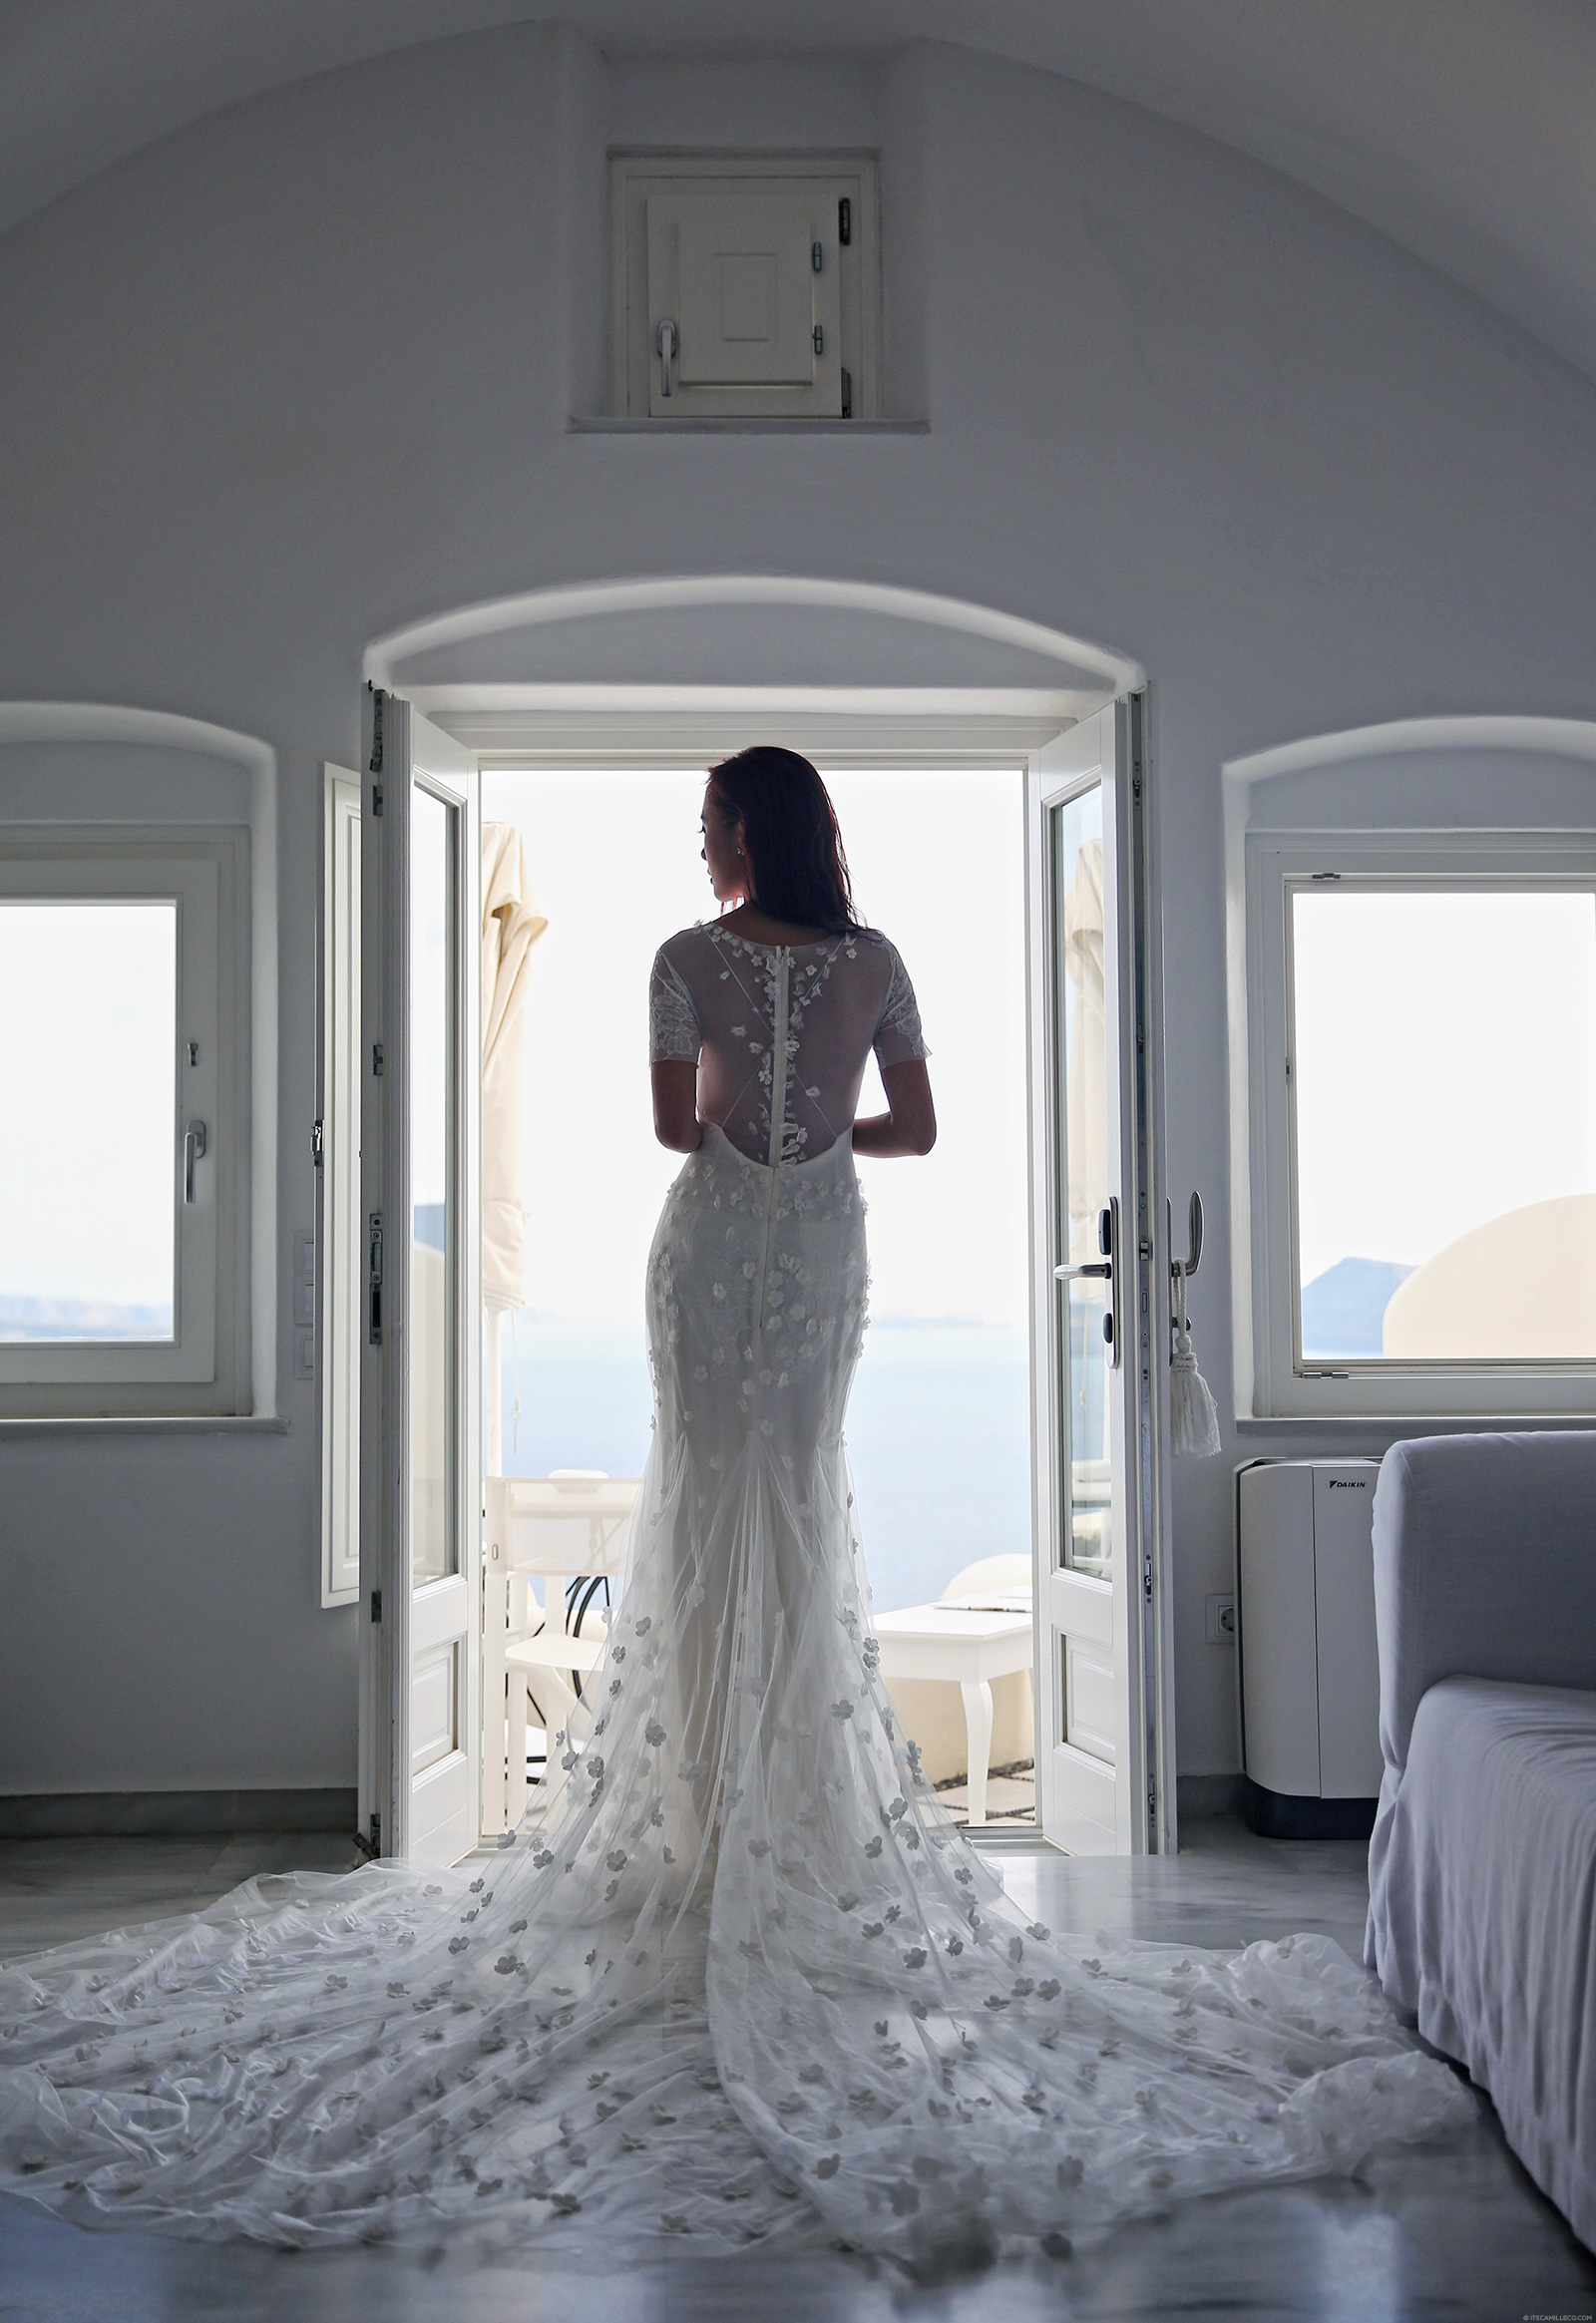 Vera Wang Bridal Gown - www.itscamilleco.com